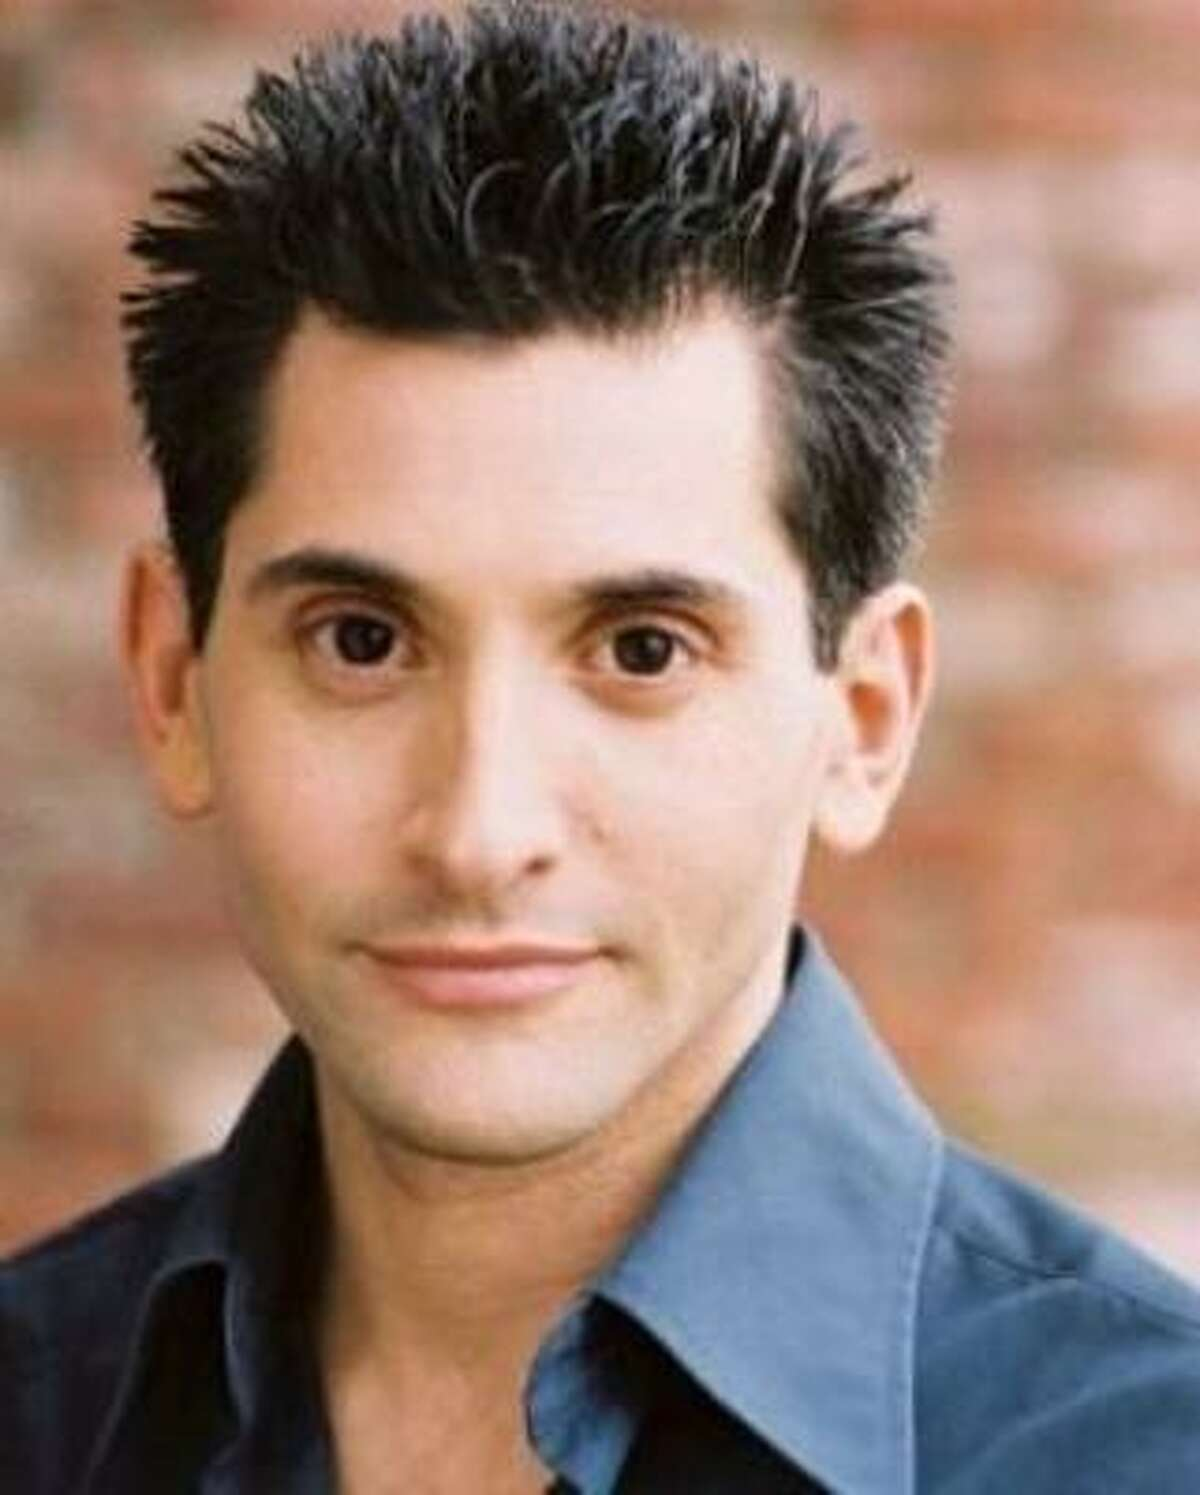 Andrew Koenig was probably best known for playing Boner, Kirk Cameron's friend, on the 1980s sitcom Growing Pains.